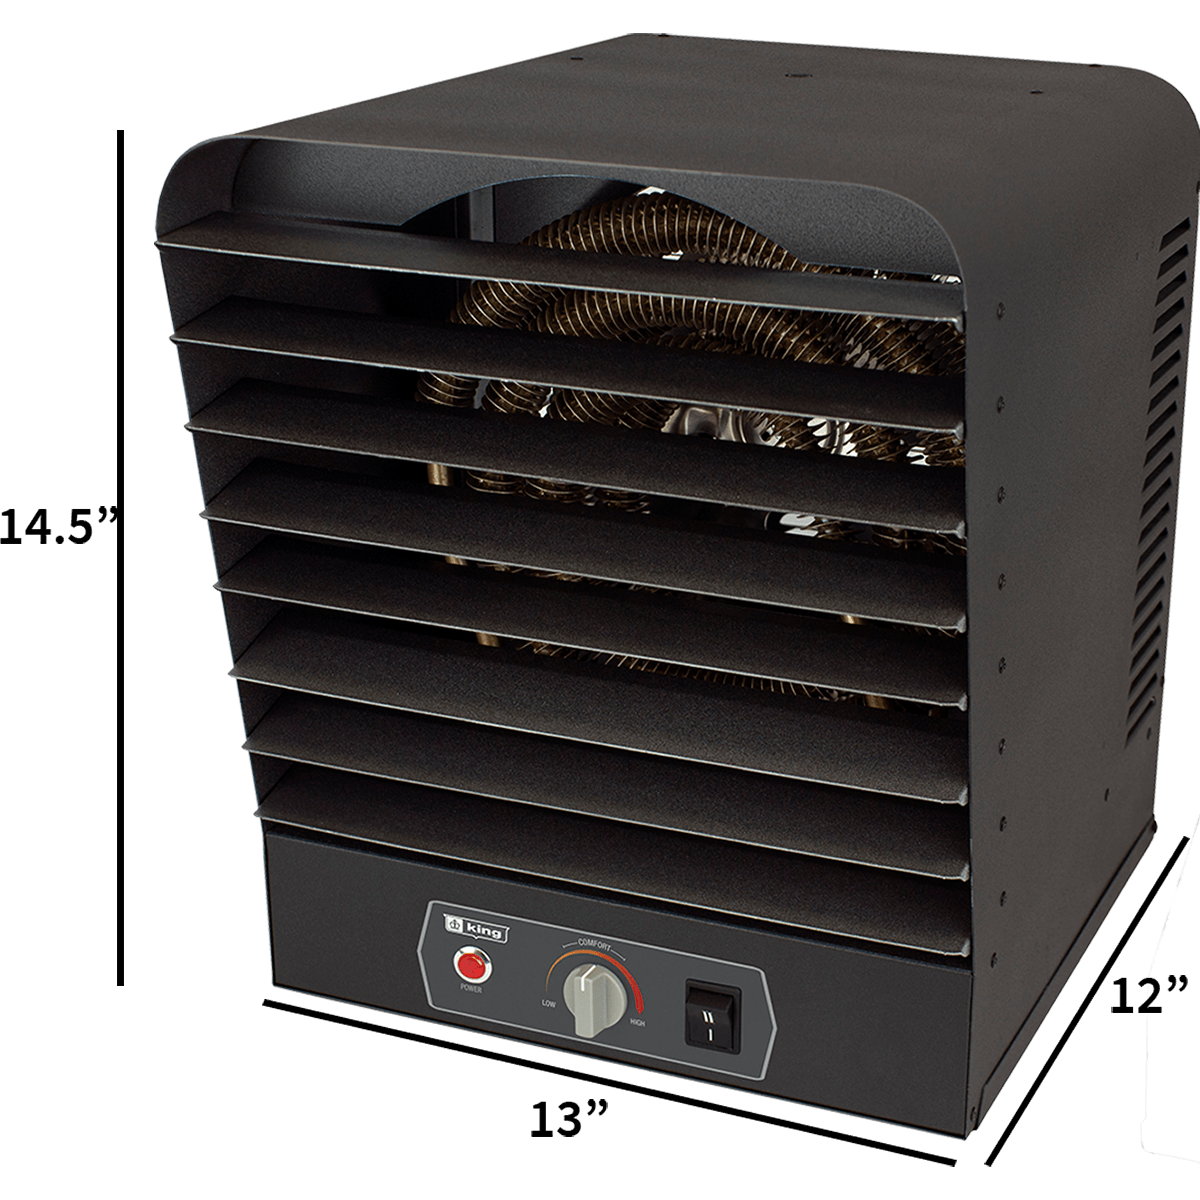 King Electric Garage Heater King Gh2405tb 240 Volt 5000 Watt Garage Heater Gray